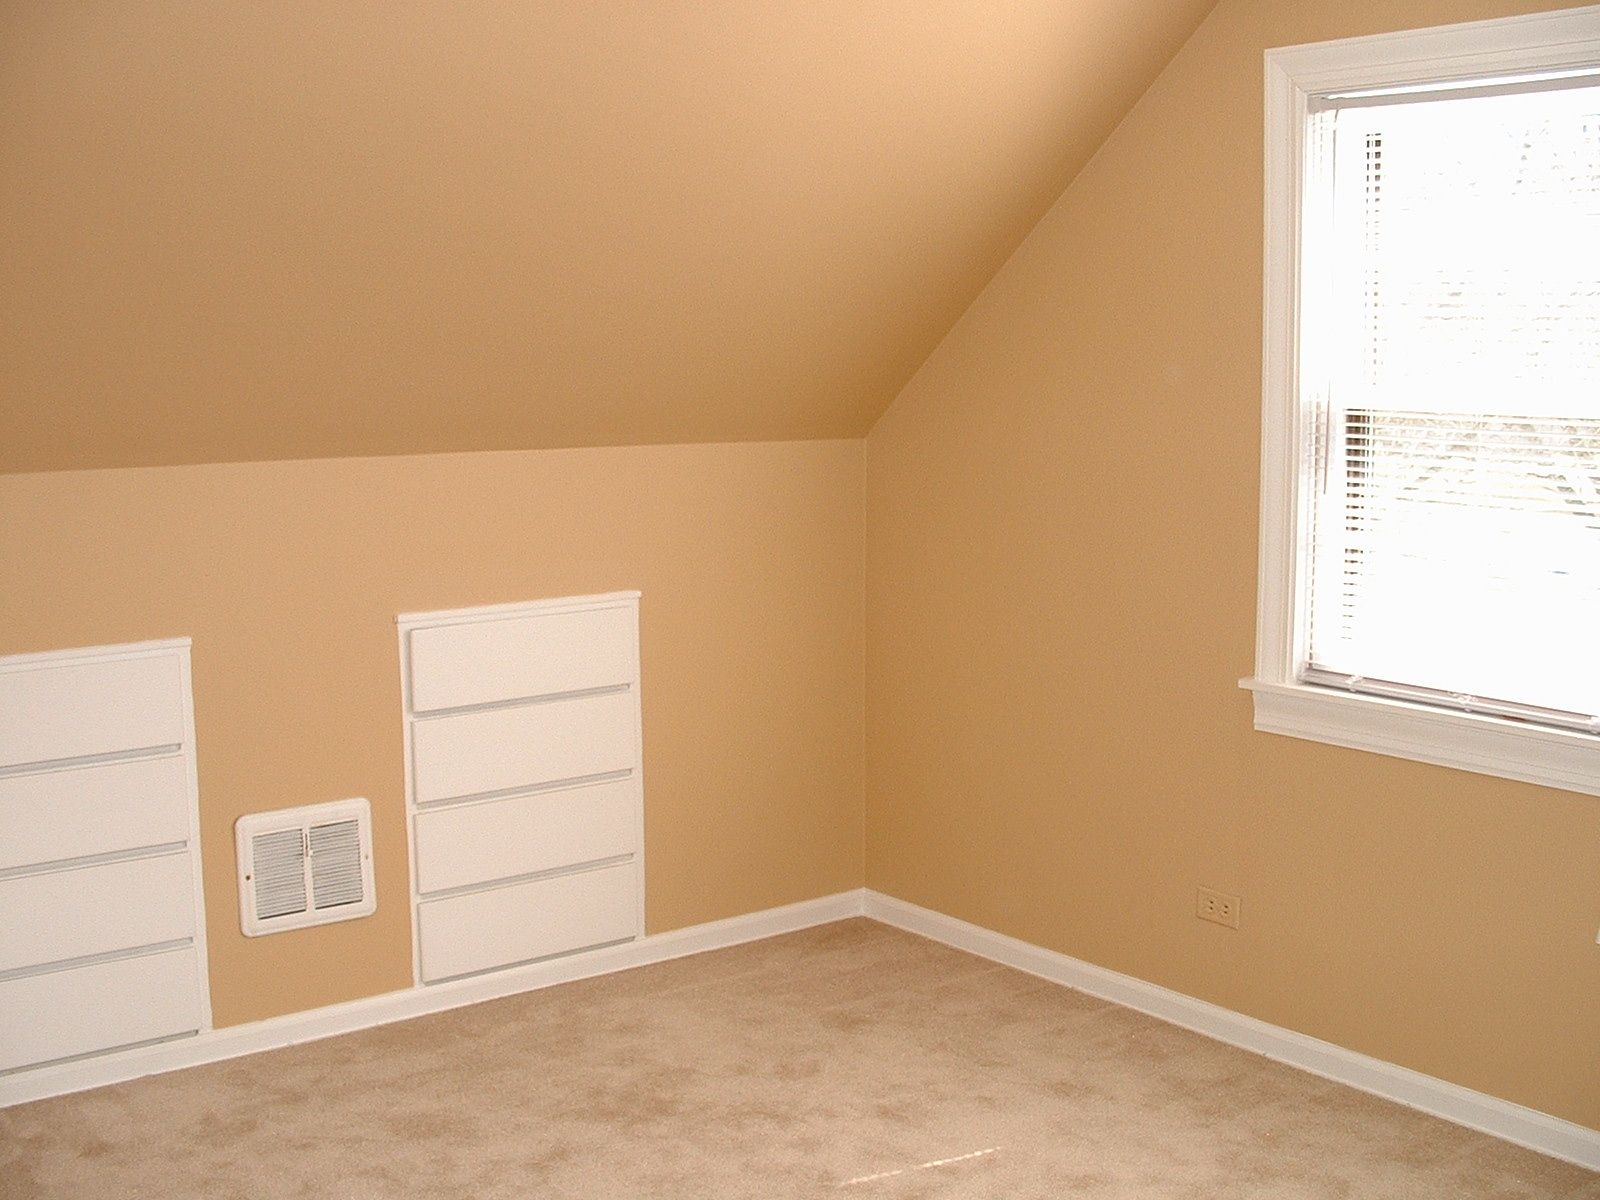 New House Paint Colors house paint colors bedroom we listen to our customers and make